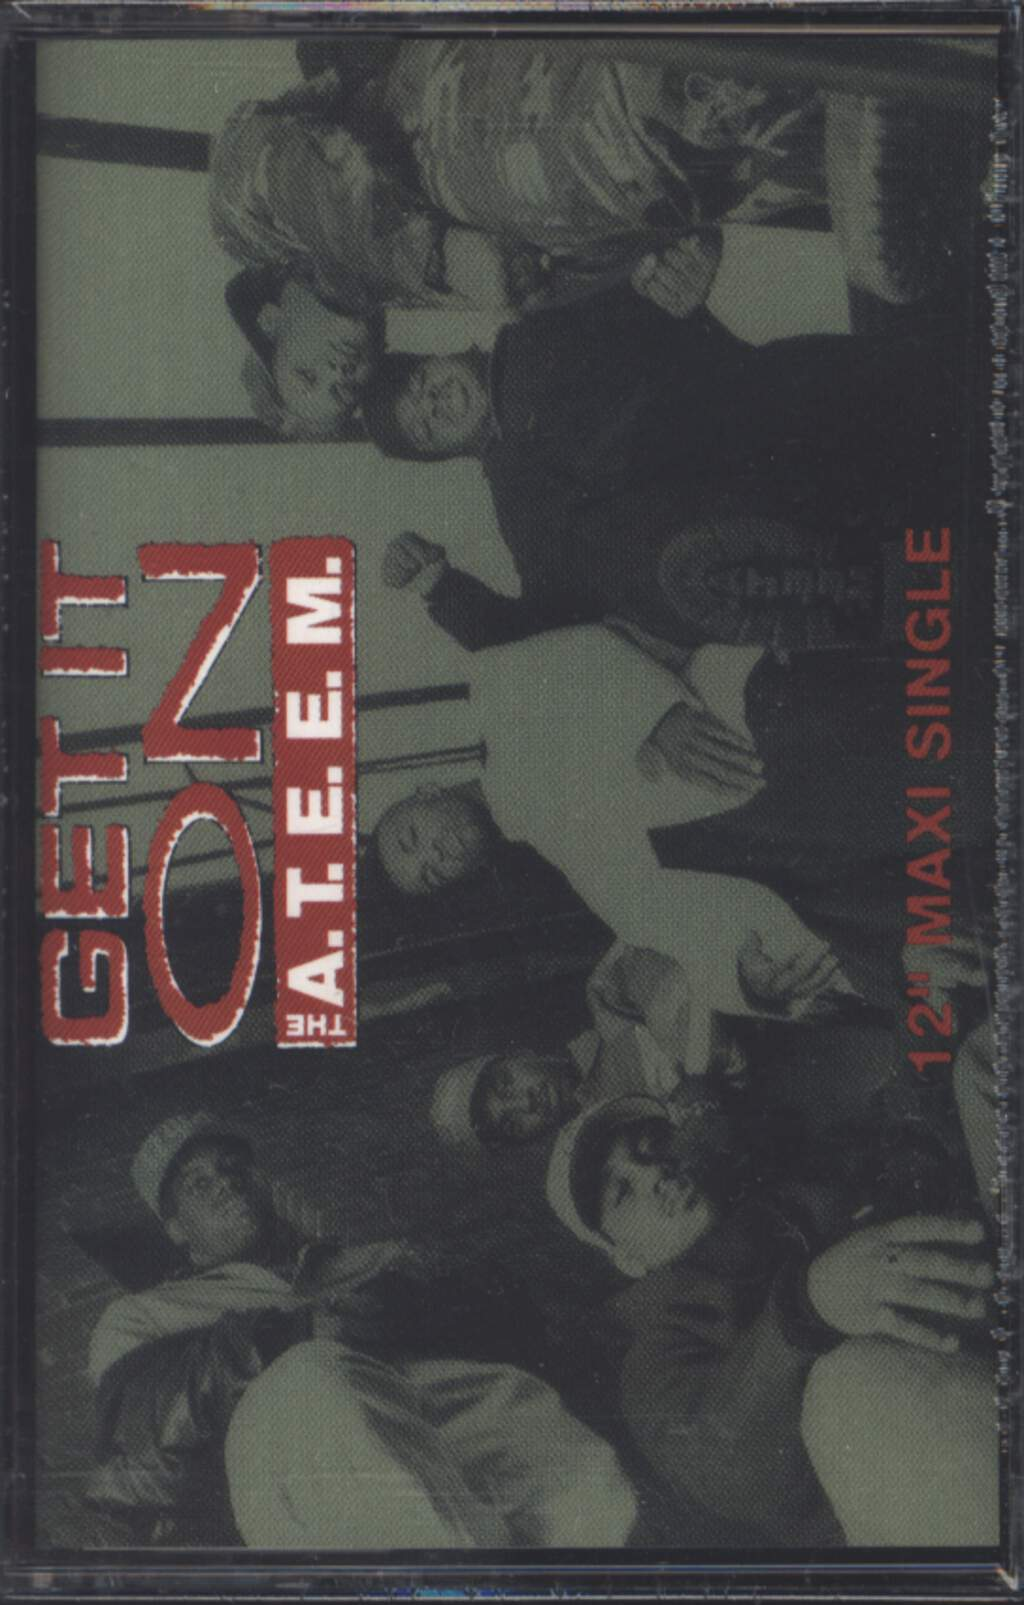 The A.T.E.E.M.: Get It On, Compact Cassette